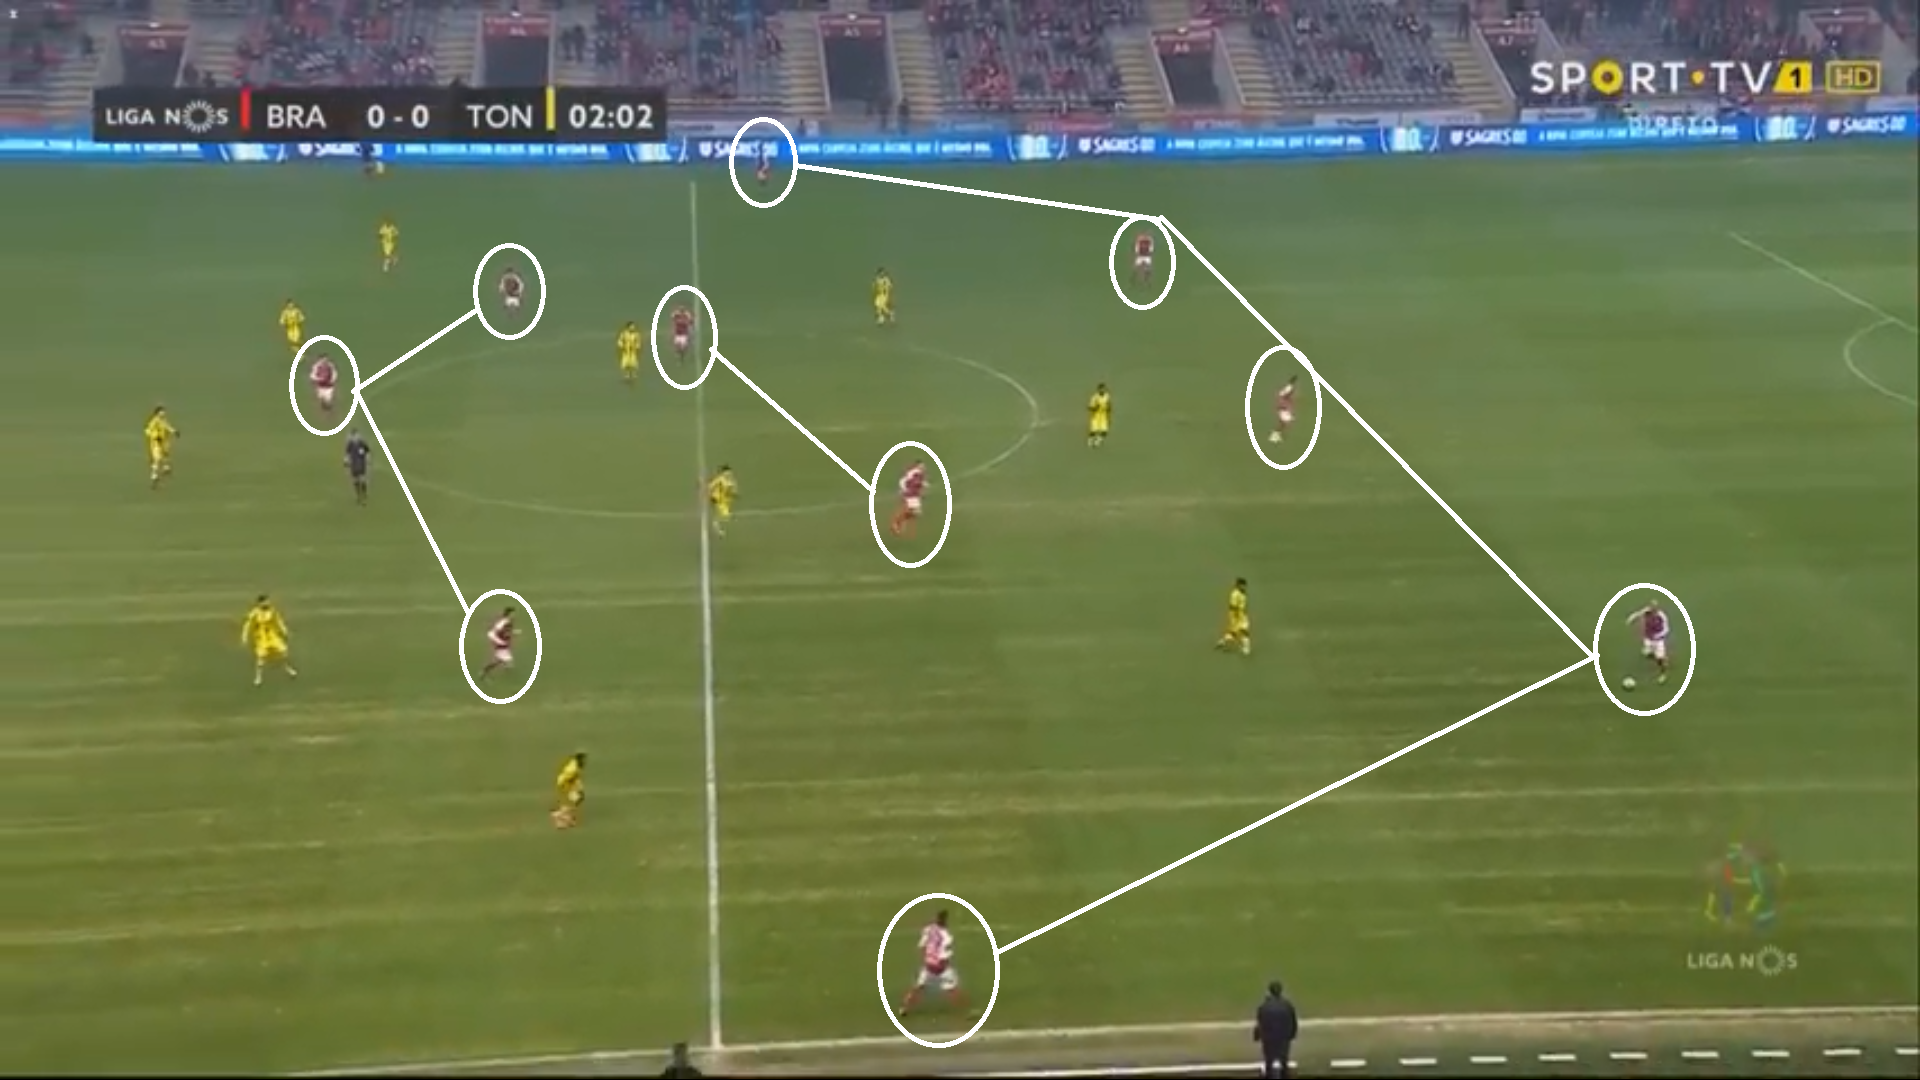 Liga NOS 2019/20 - Braga vs Tondela - tactical analysis tactics